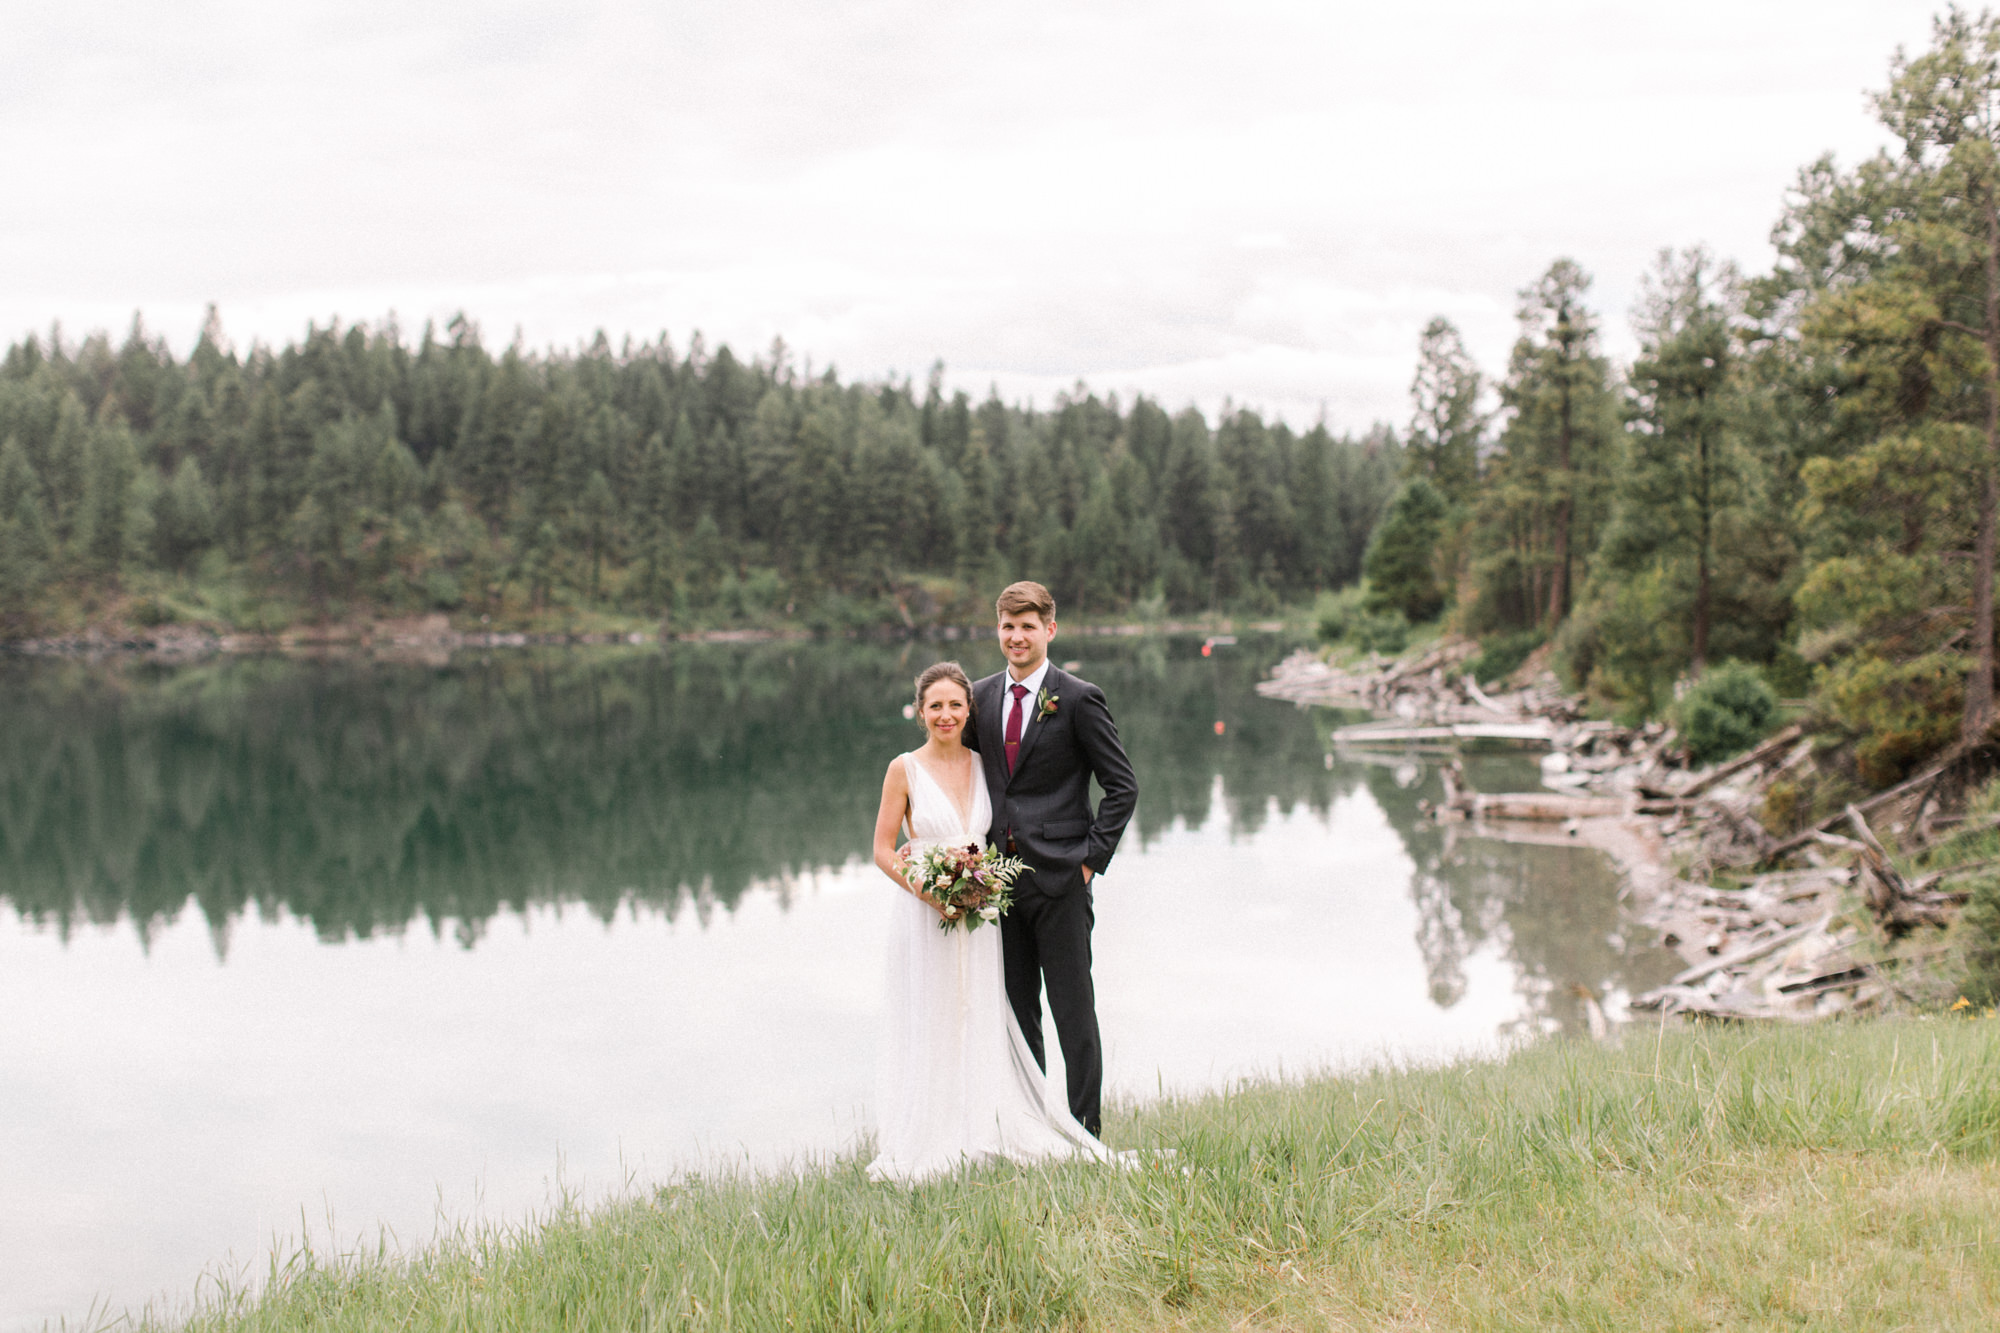 Invermere-romantic-summer-wedding-34.jpg